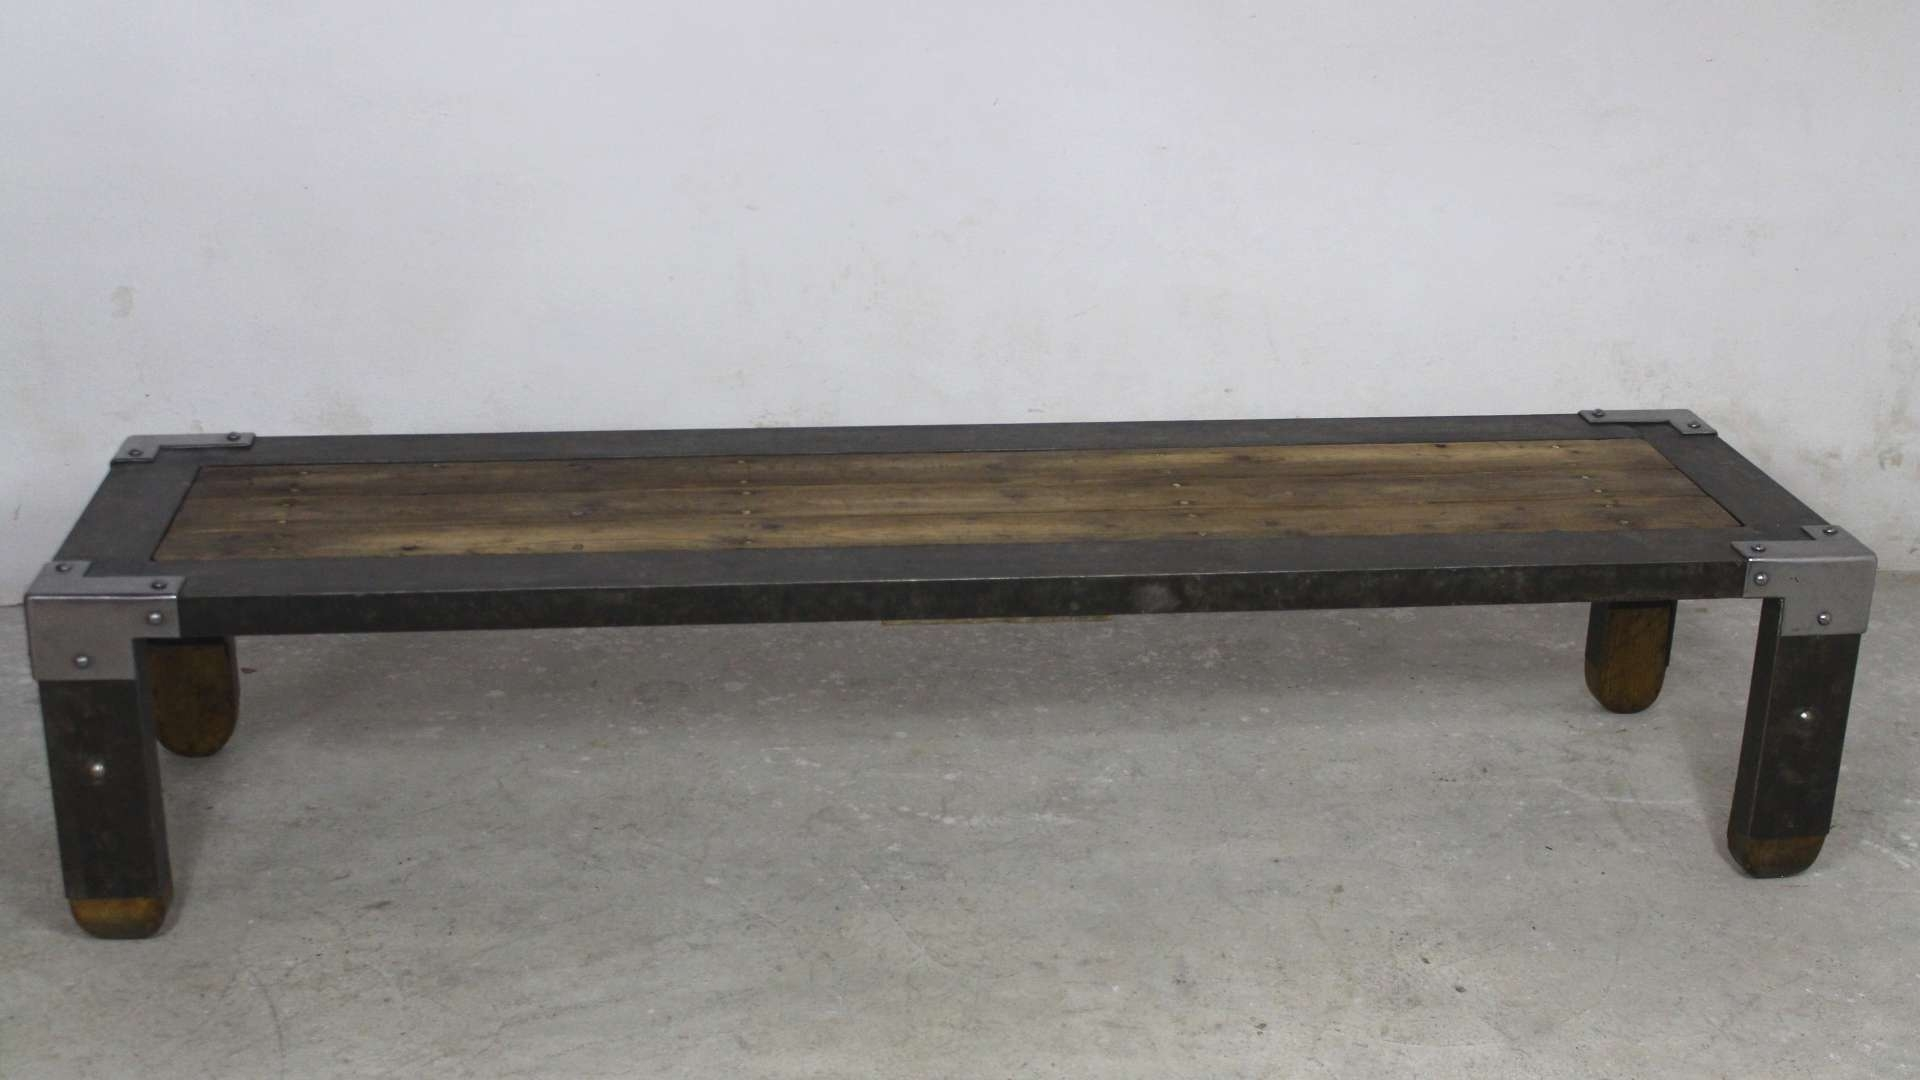 2017 Long Coffee Tables Throughout Long Industrial Coffee Table, 1950S For Sale At Pamono (View 1 of 20)